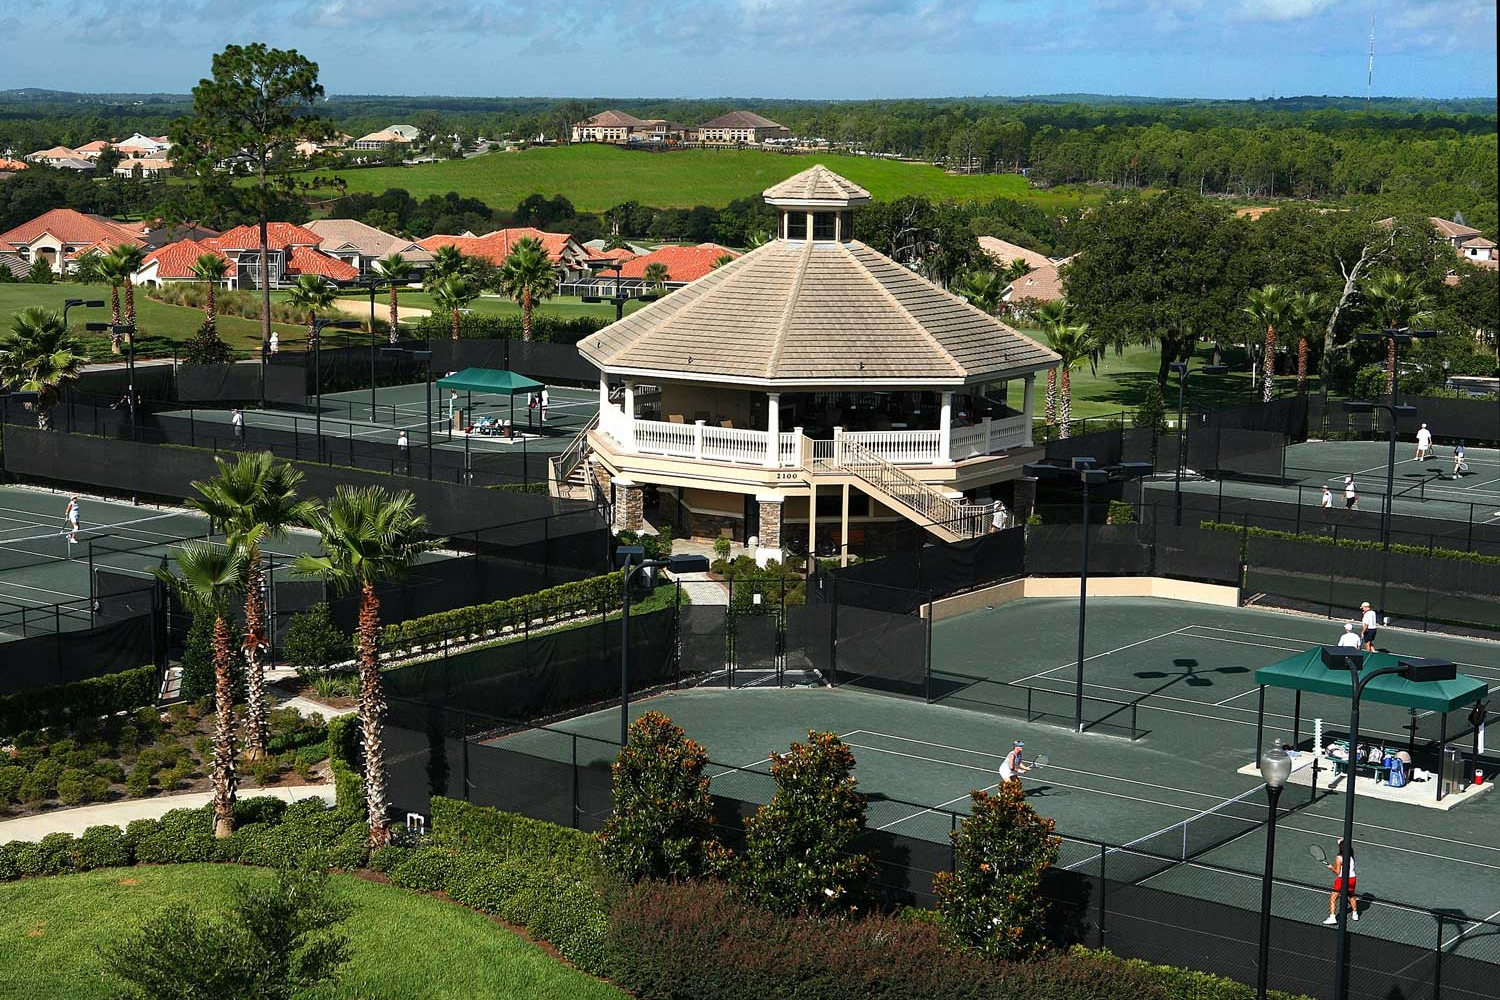 Skyview Tennis Club